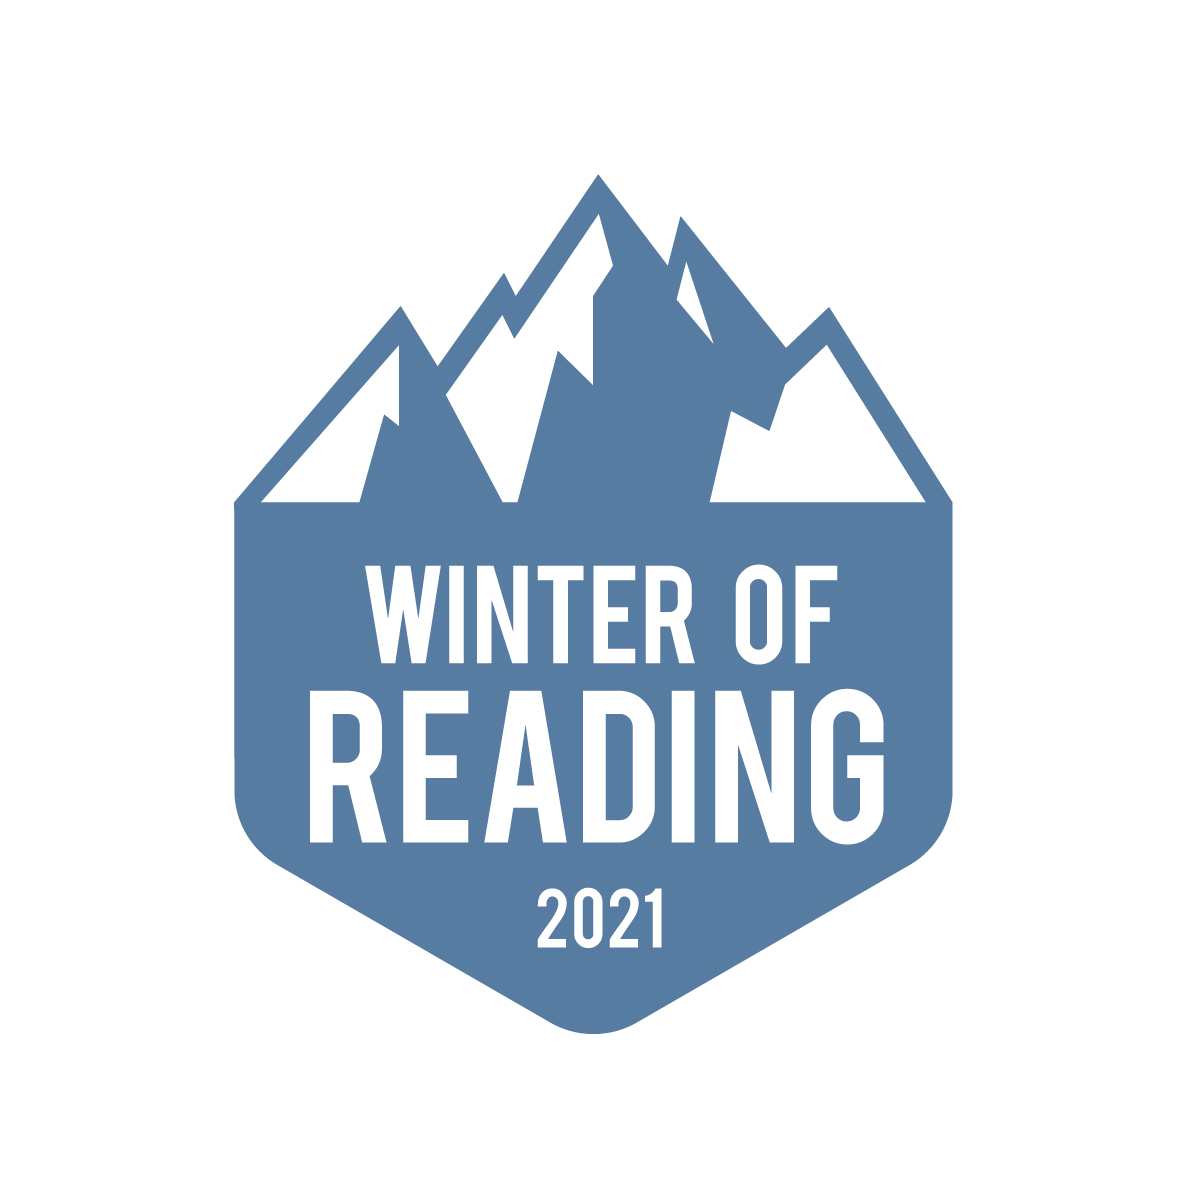 Winter of Reading 2021 logo